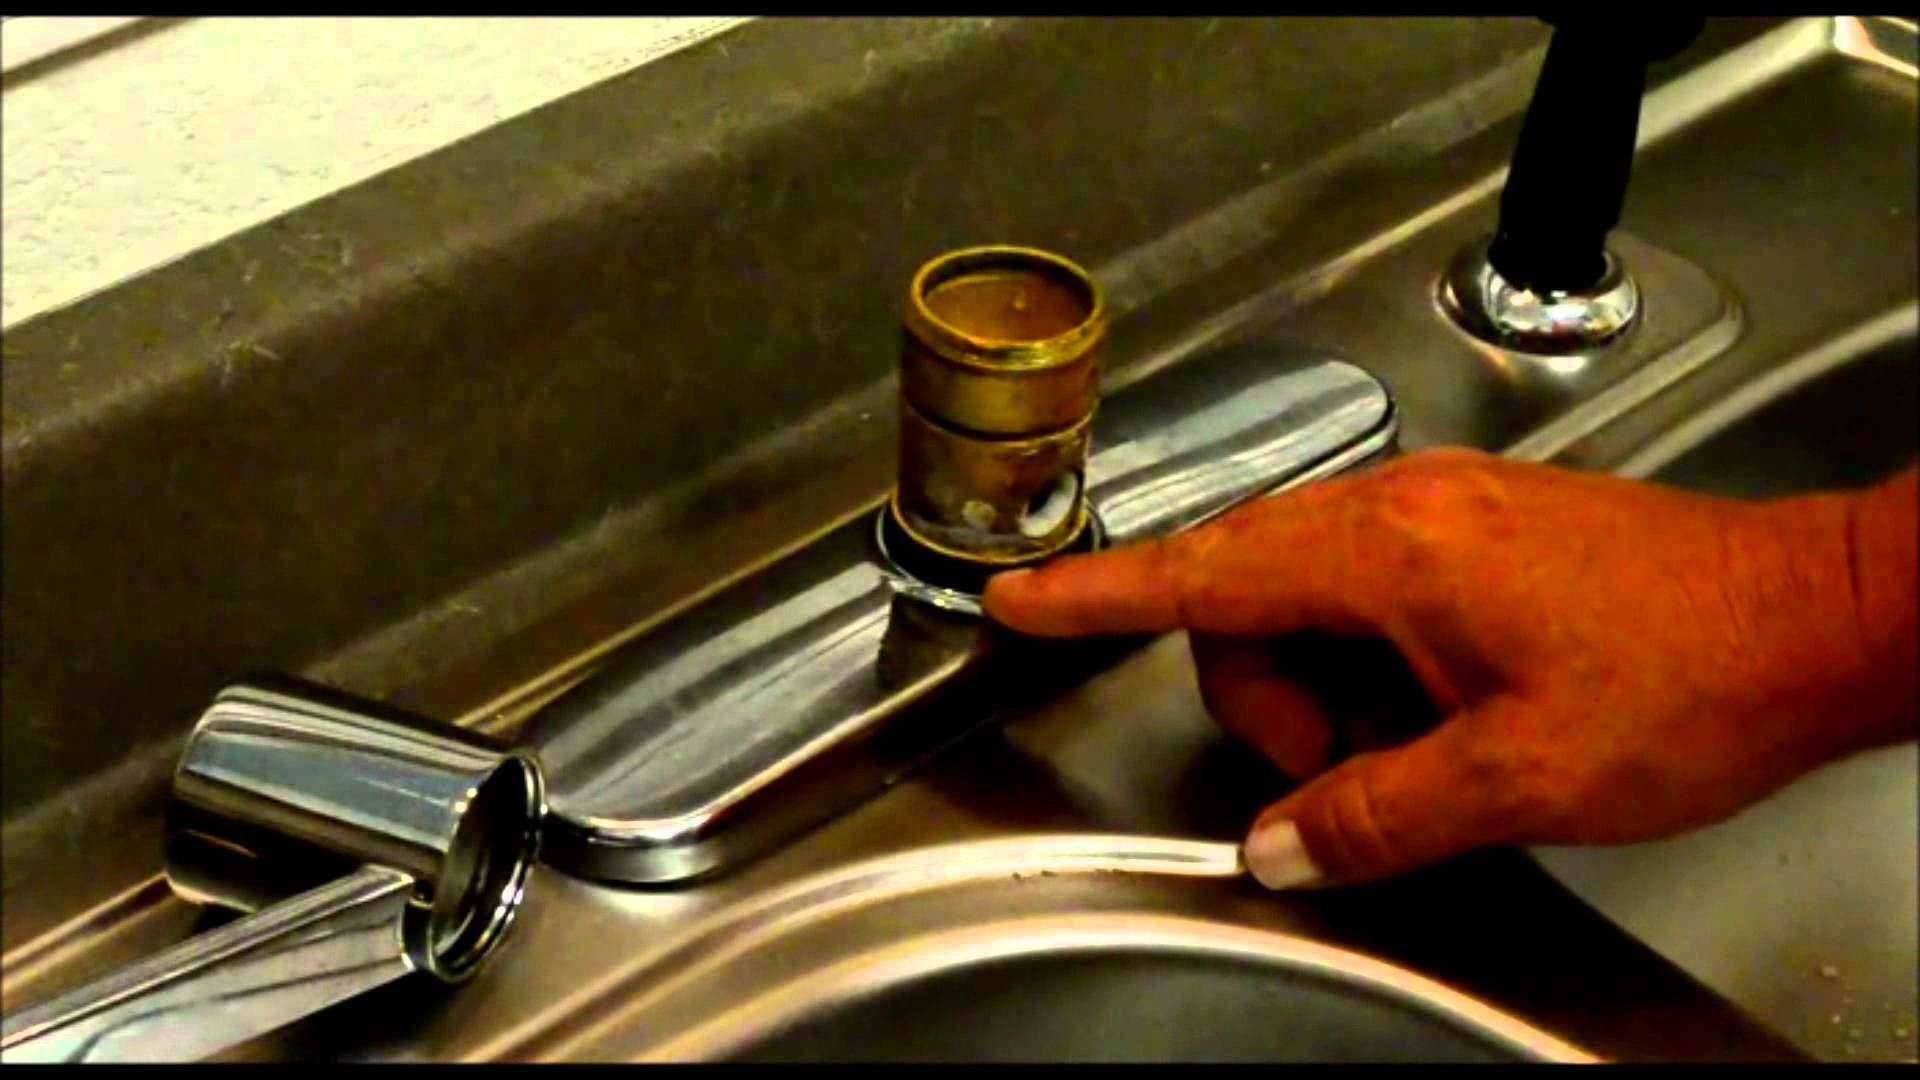 In this video I show you how to repair a Moen Style Kitchen Faucet ...